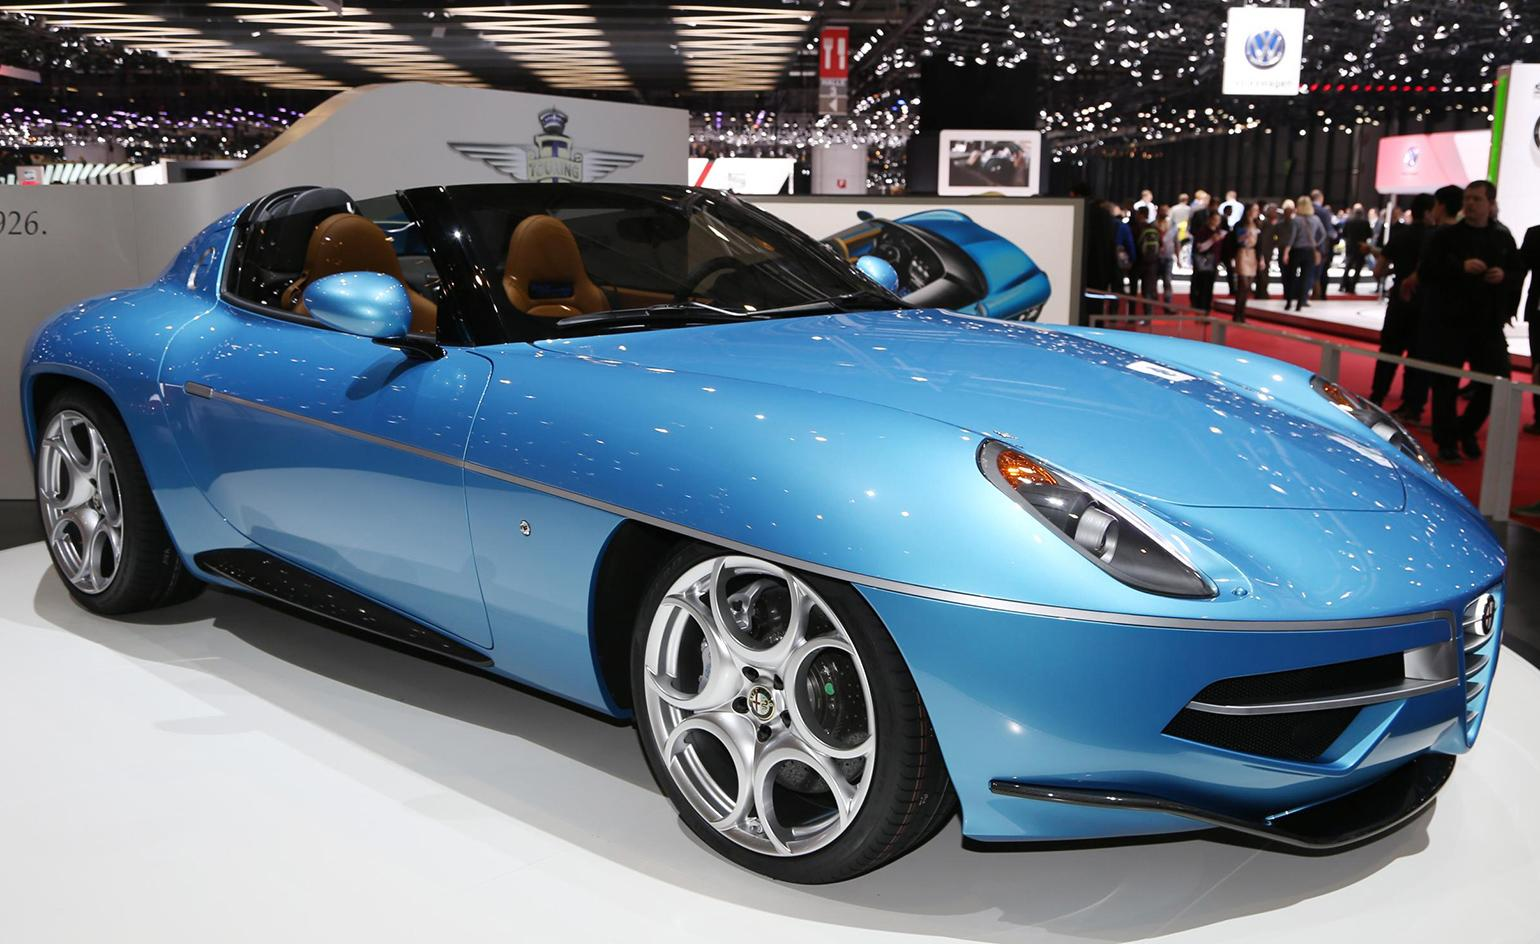 Car chronicles: the best new cars and concepts from Geneva Motor Show 2016